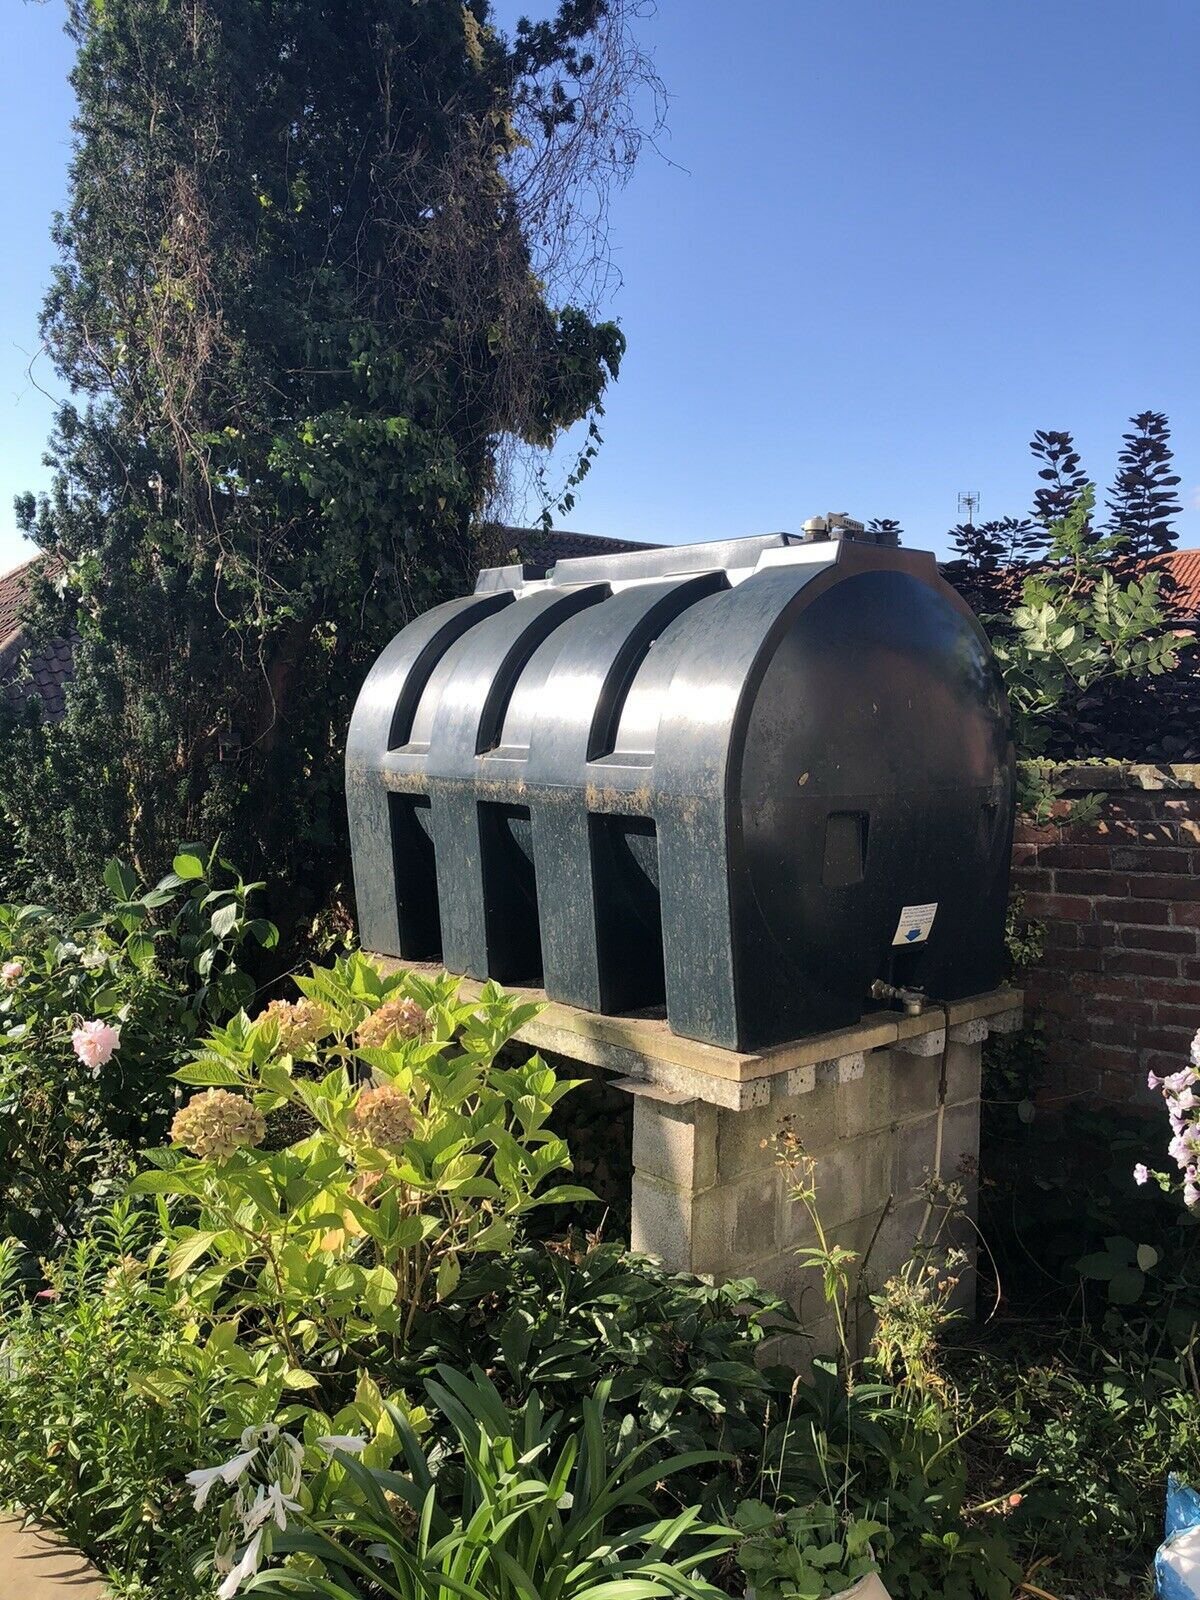 2000 Litre Heating Oil Storage Tank With 300 Litres of Oil